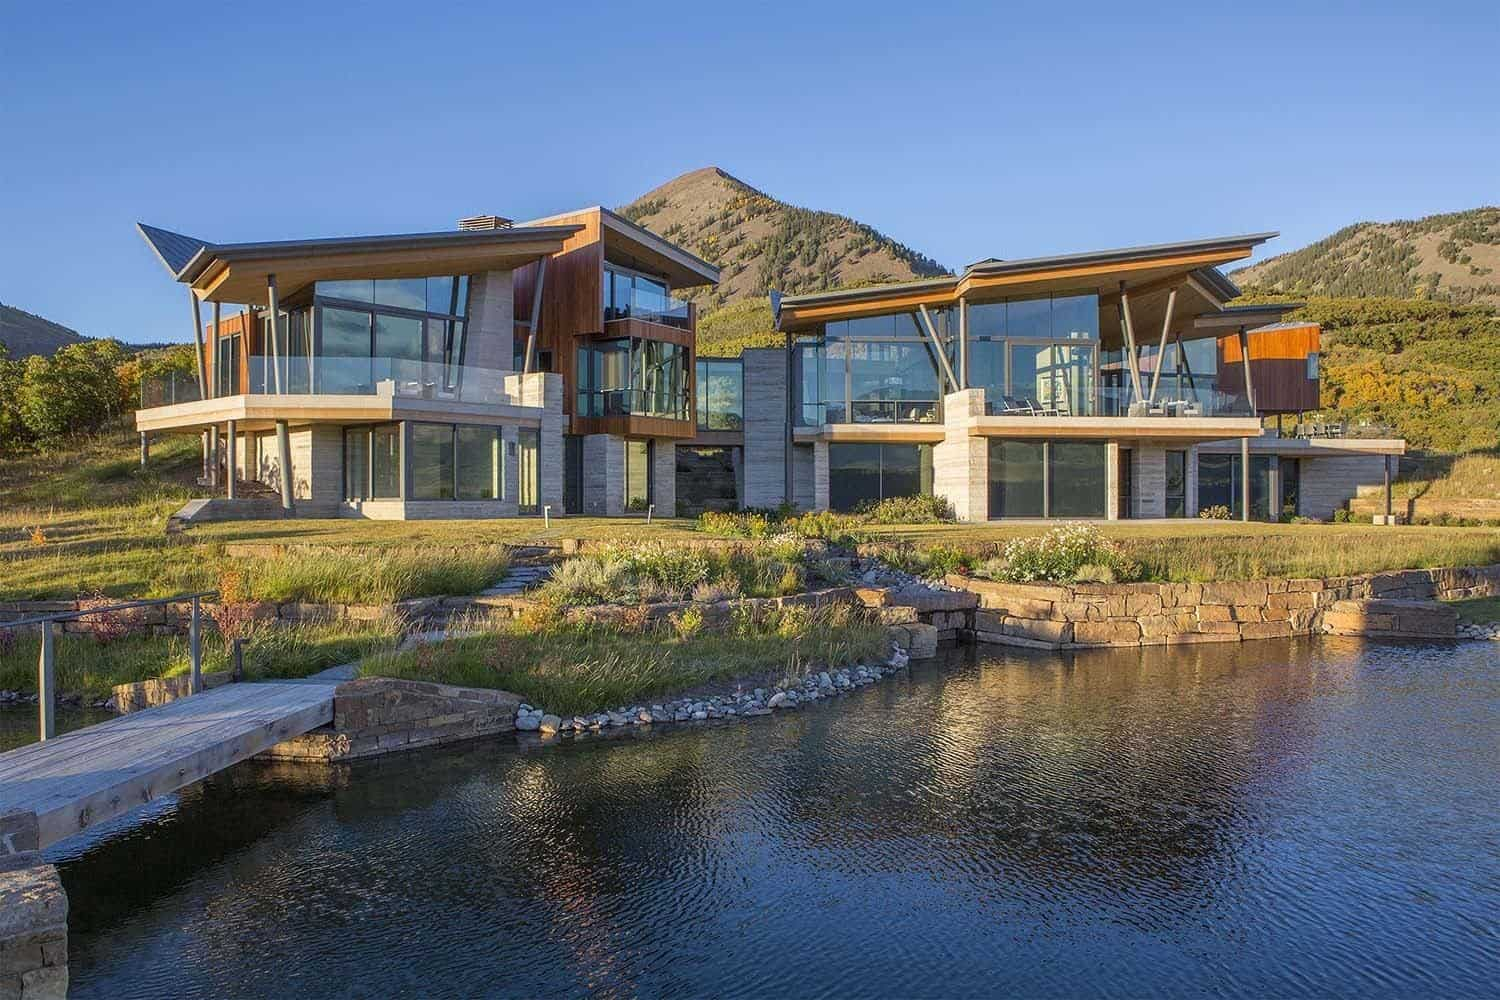 Modern-Residence-Colorado-Poss Architecture-59-1 Kindesign